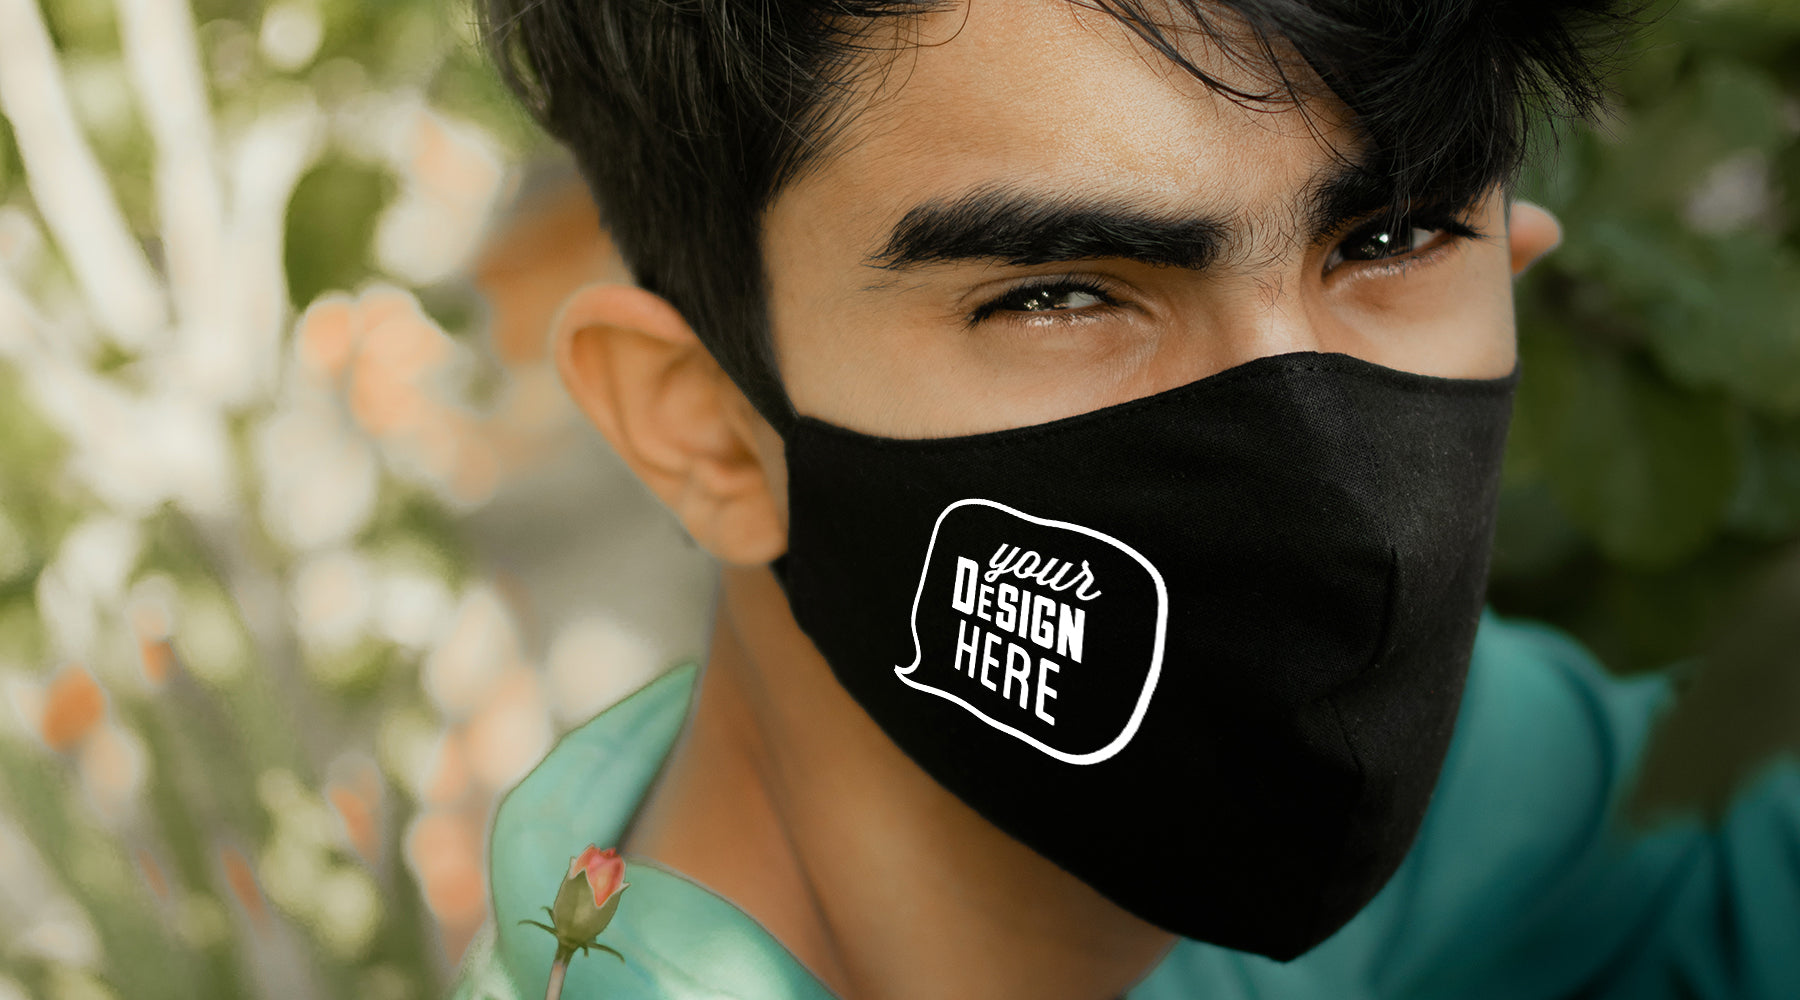 Organic Fair Trade face masks can be custom printed for sale, online events or company merchandise